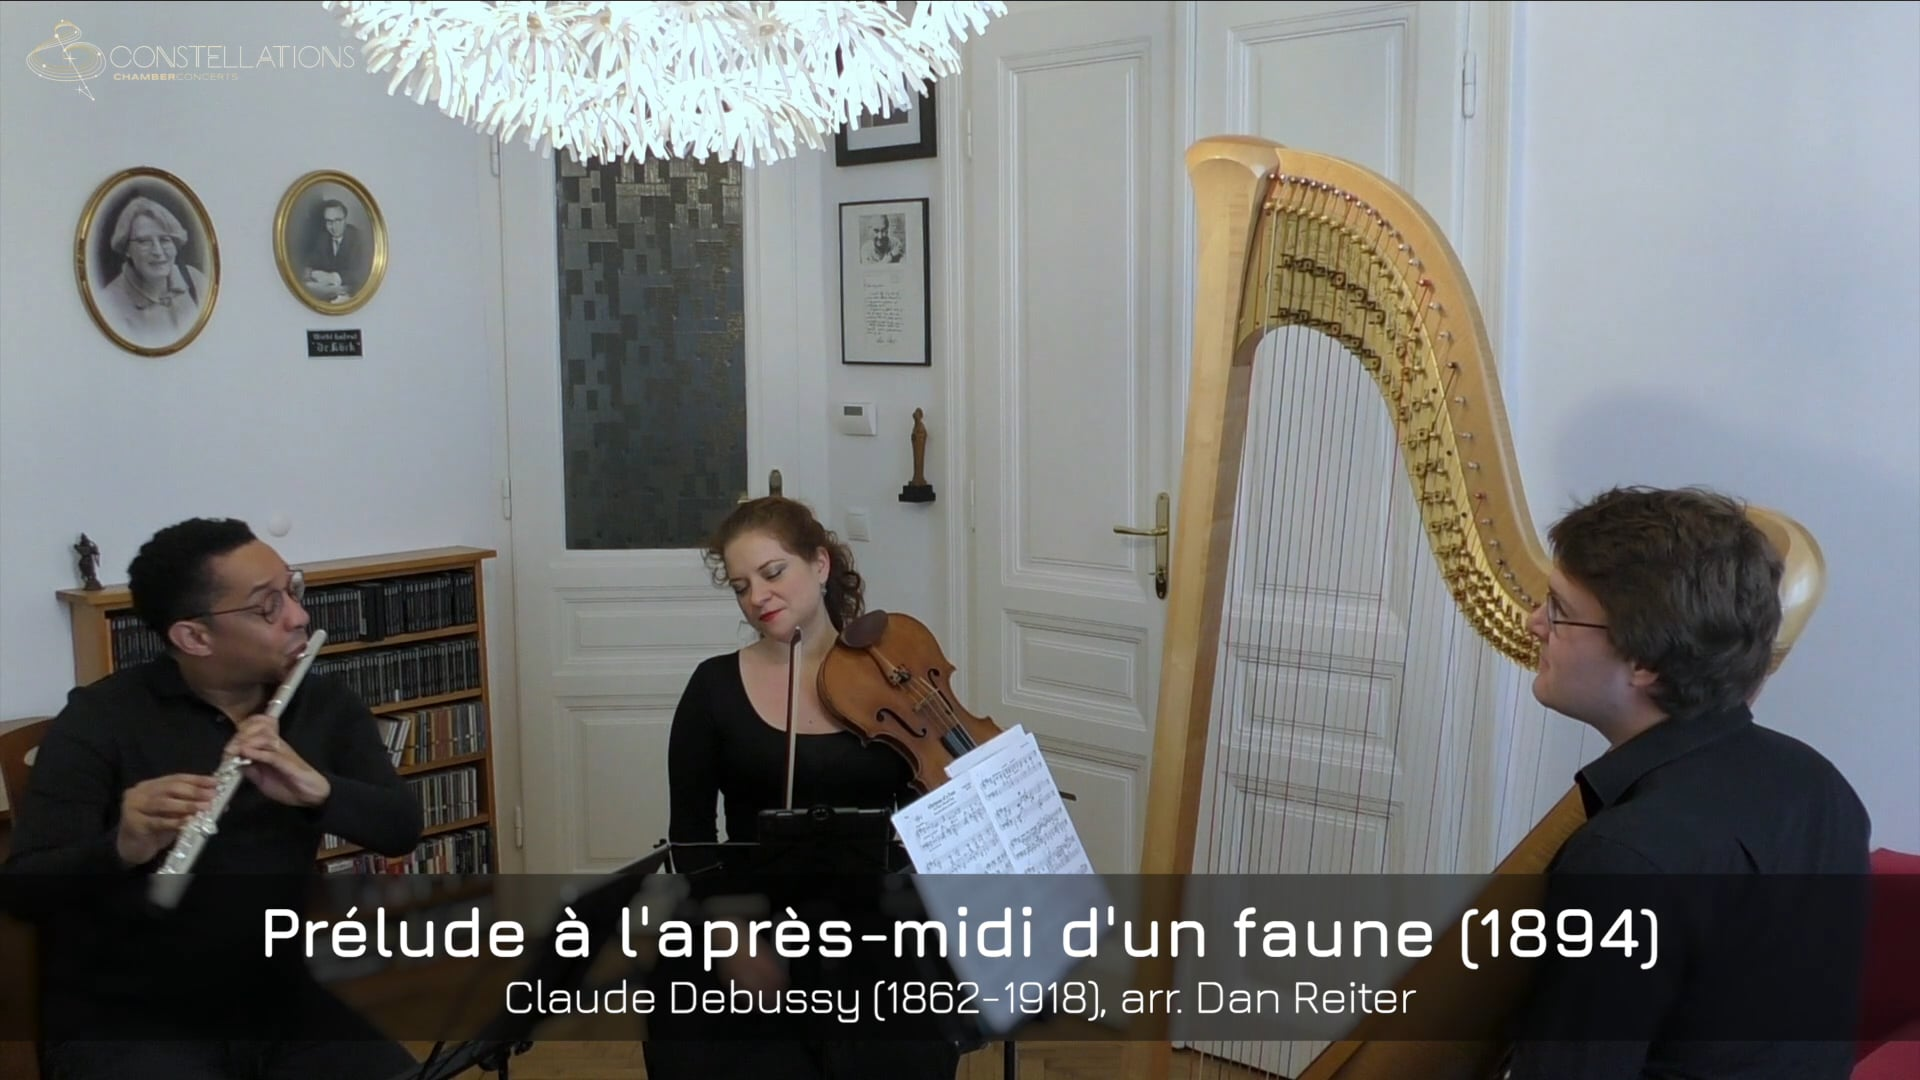 Trio l'apres midi - Debussy: Prelude to the Afternoon of a Faun